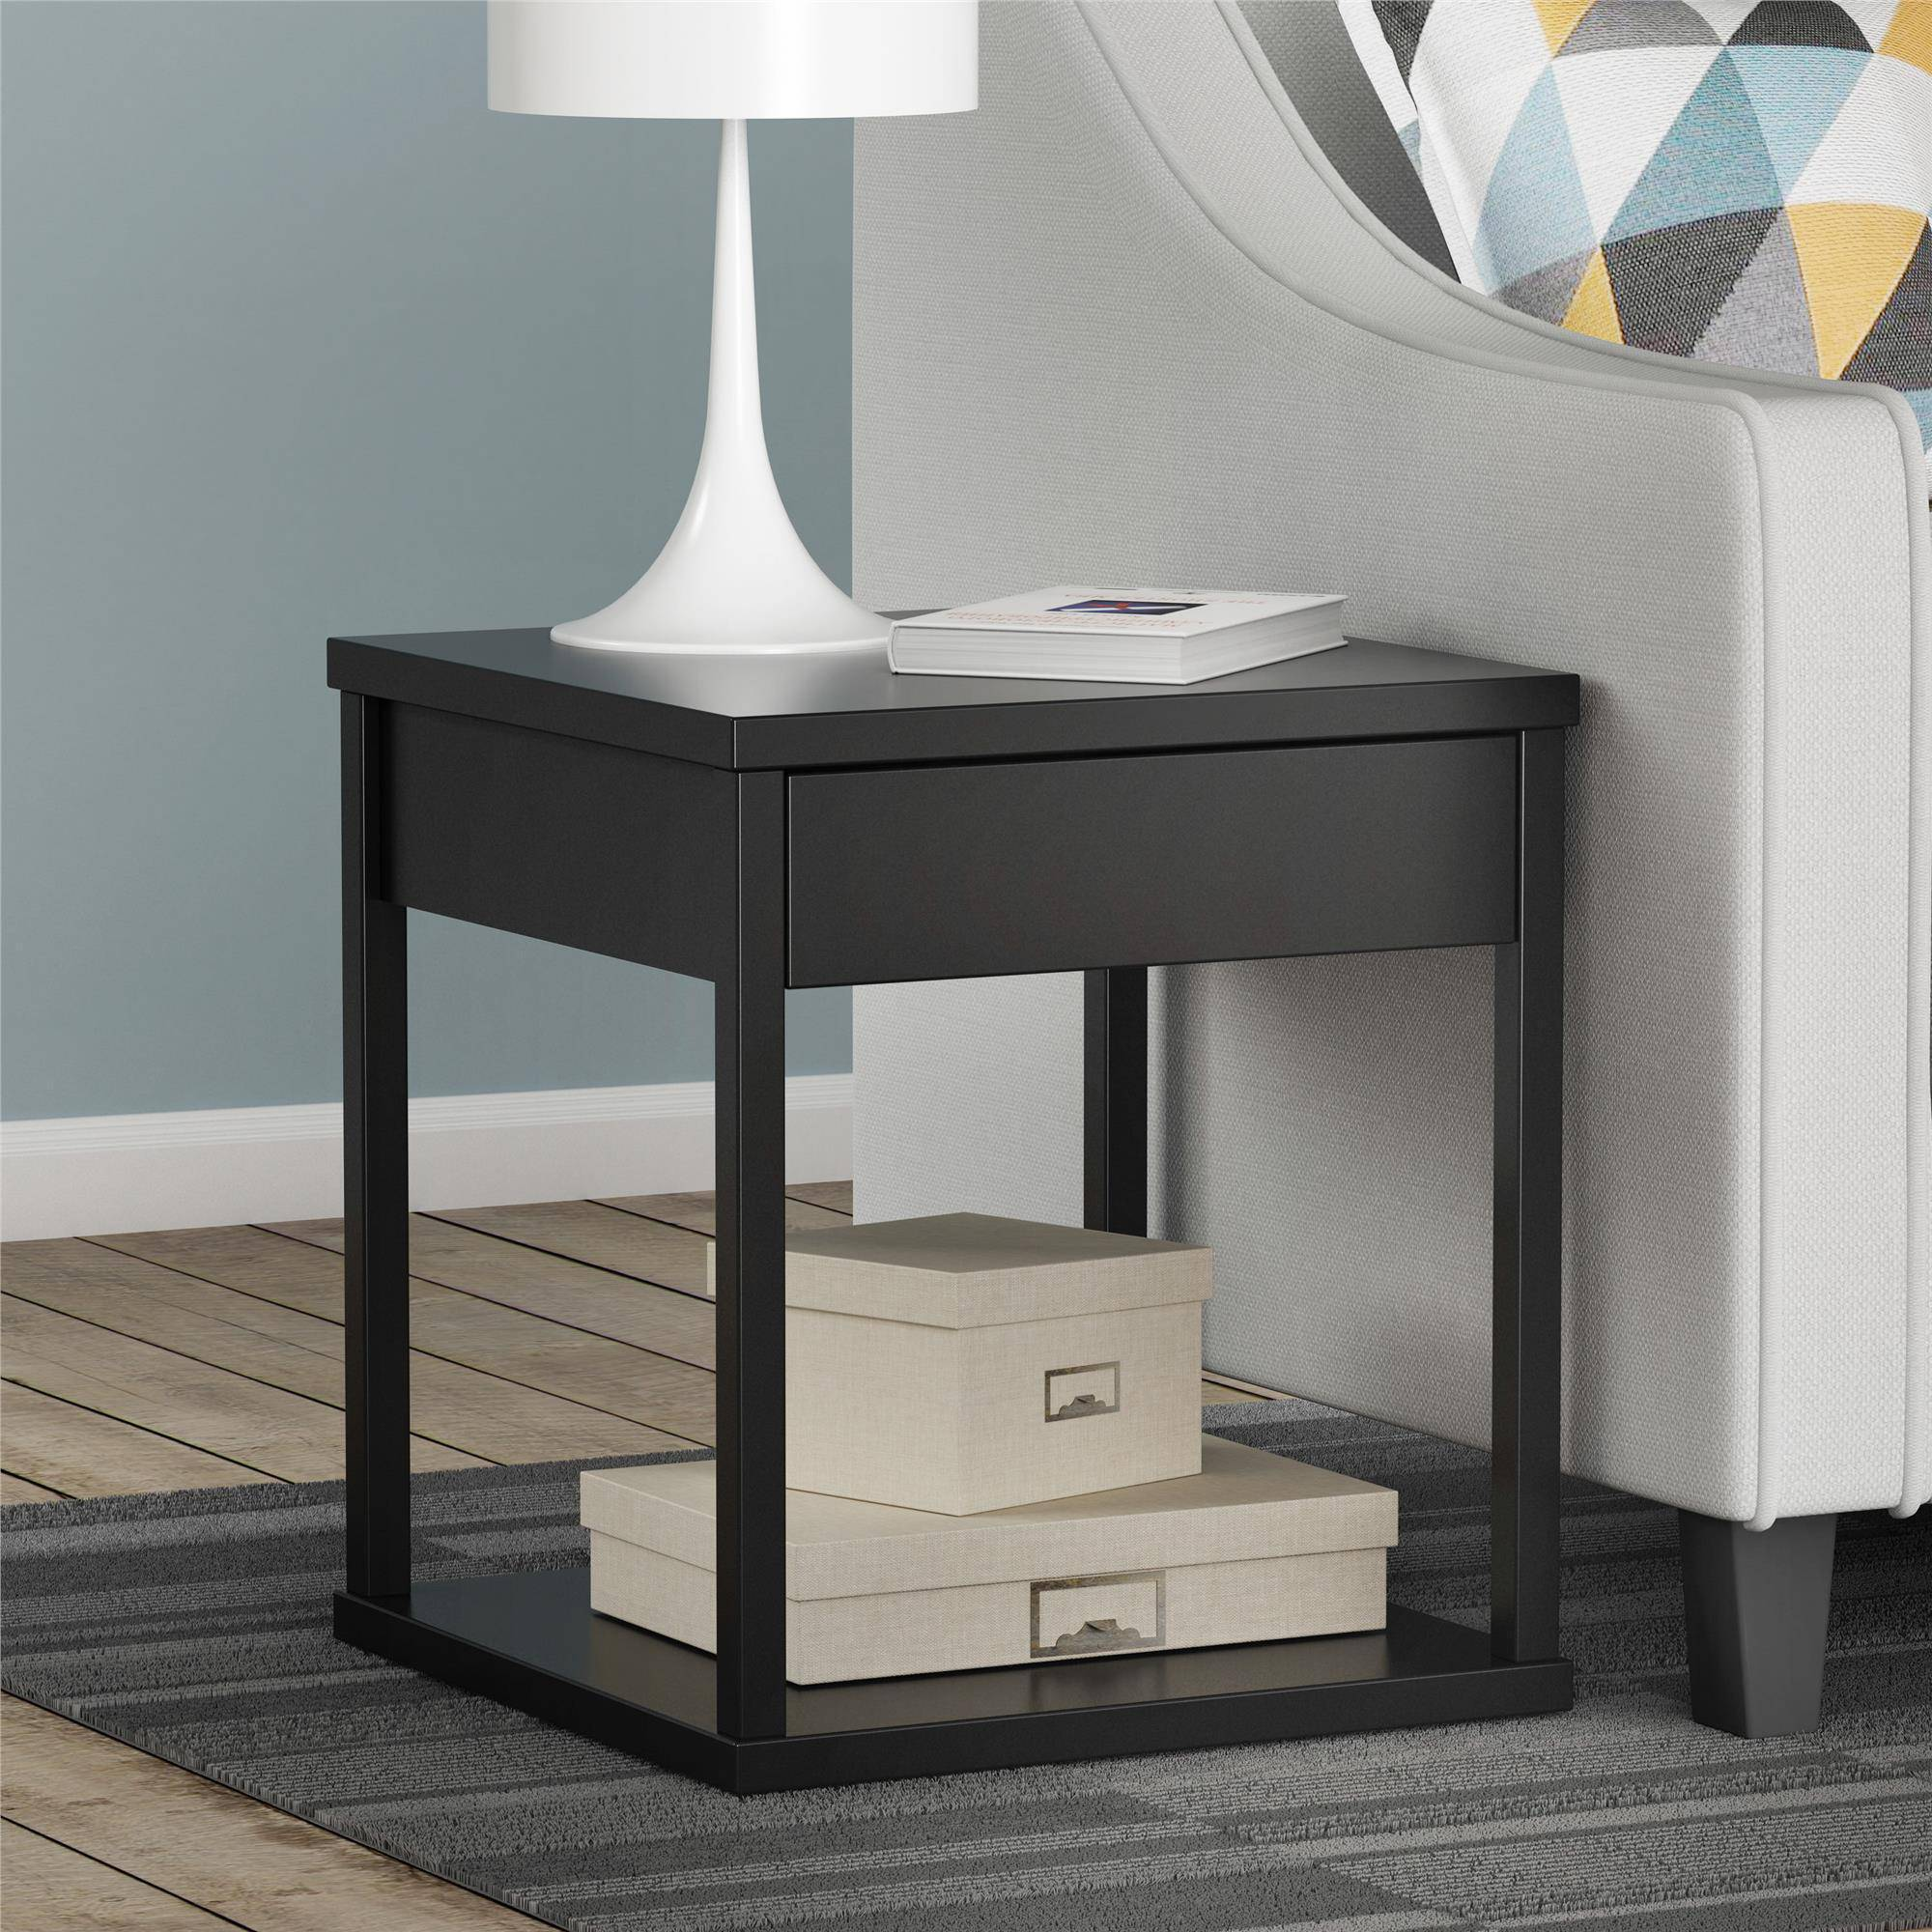 mainstays drawer nightstand end table black ebony ash farmhouse wood dining white nest tables high furniture montreal rustic coffee decor dog crates for dogs plum pipe homesense